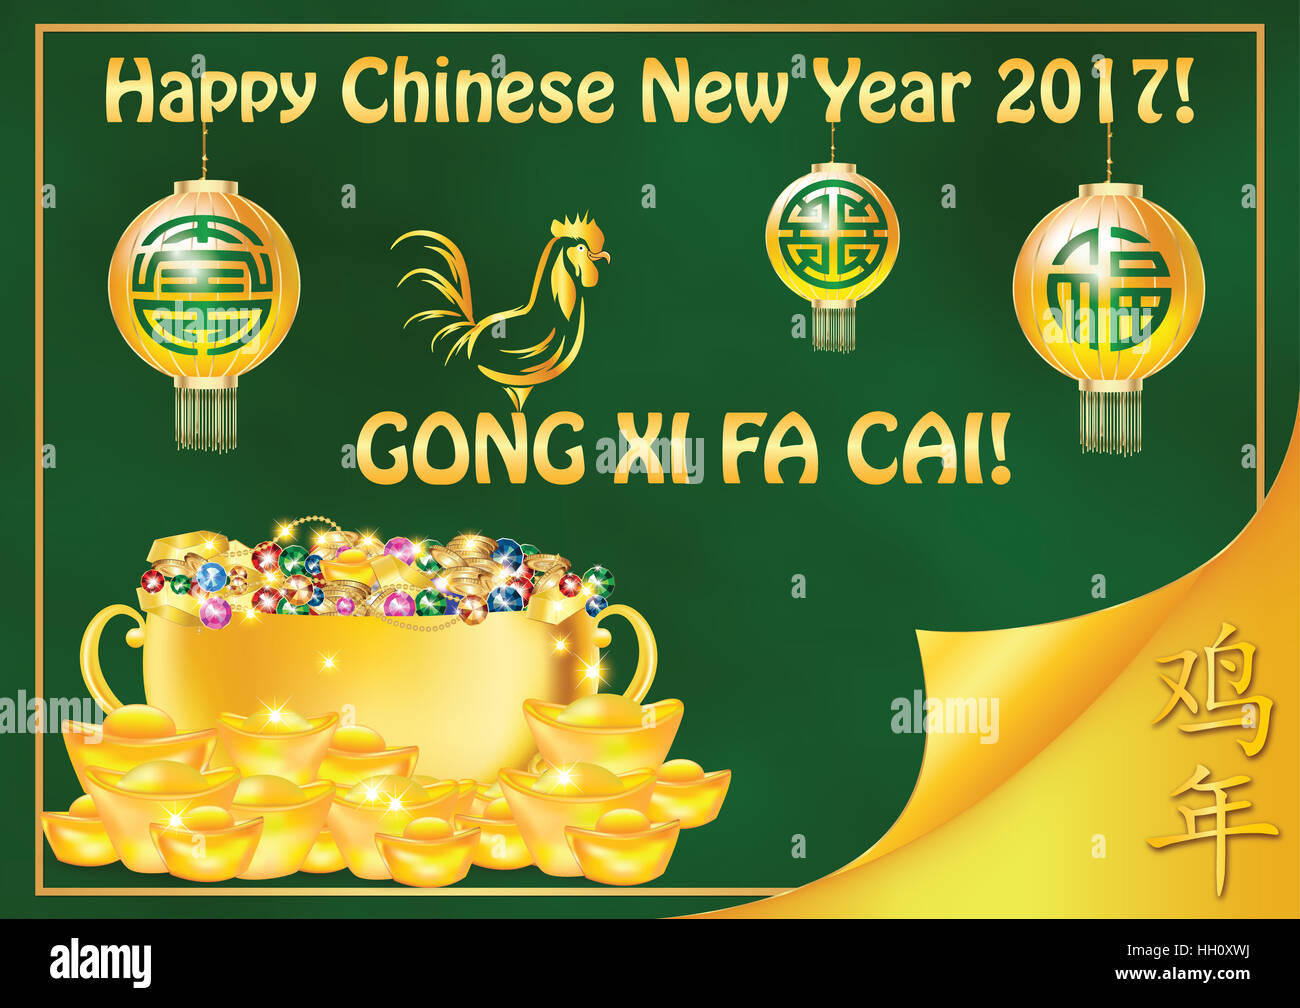 gong xi fa cai happy chinese new year 2017 year of the rooster greeting card with paper lanterns treasure bowl golden ingot